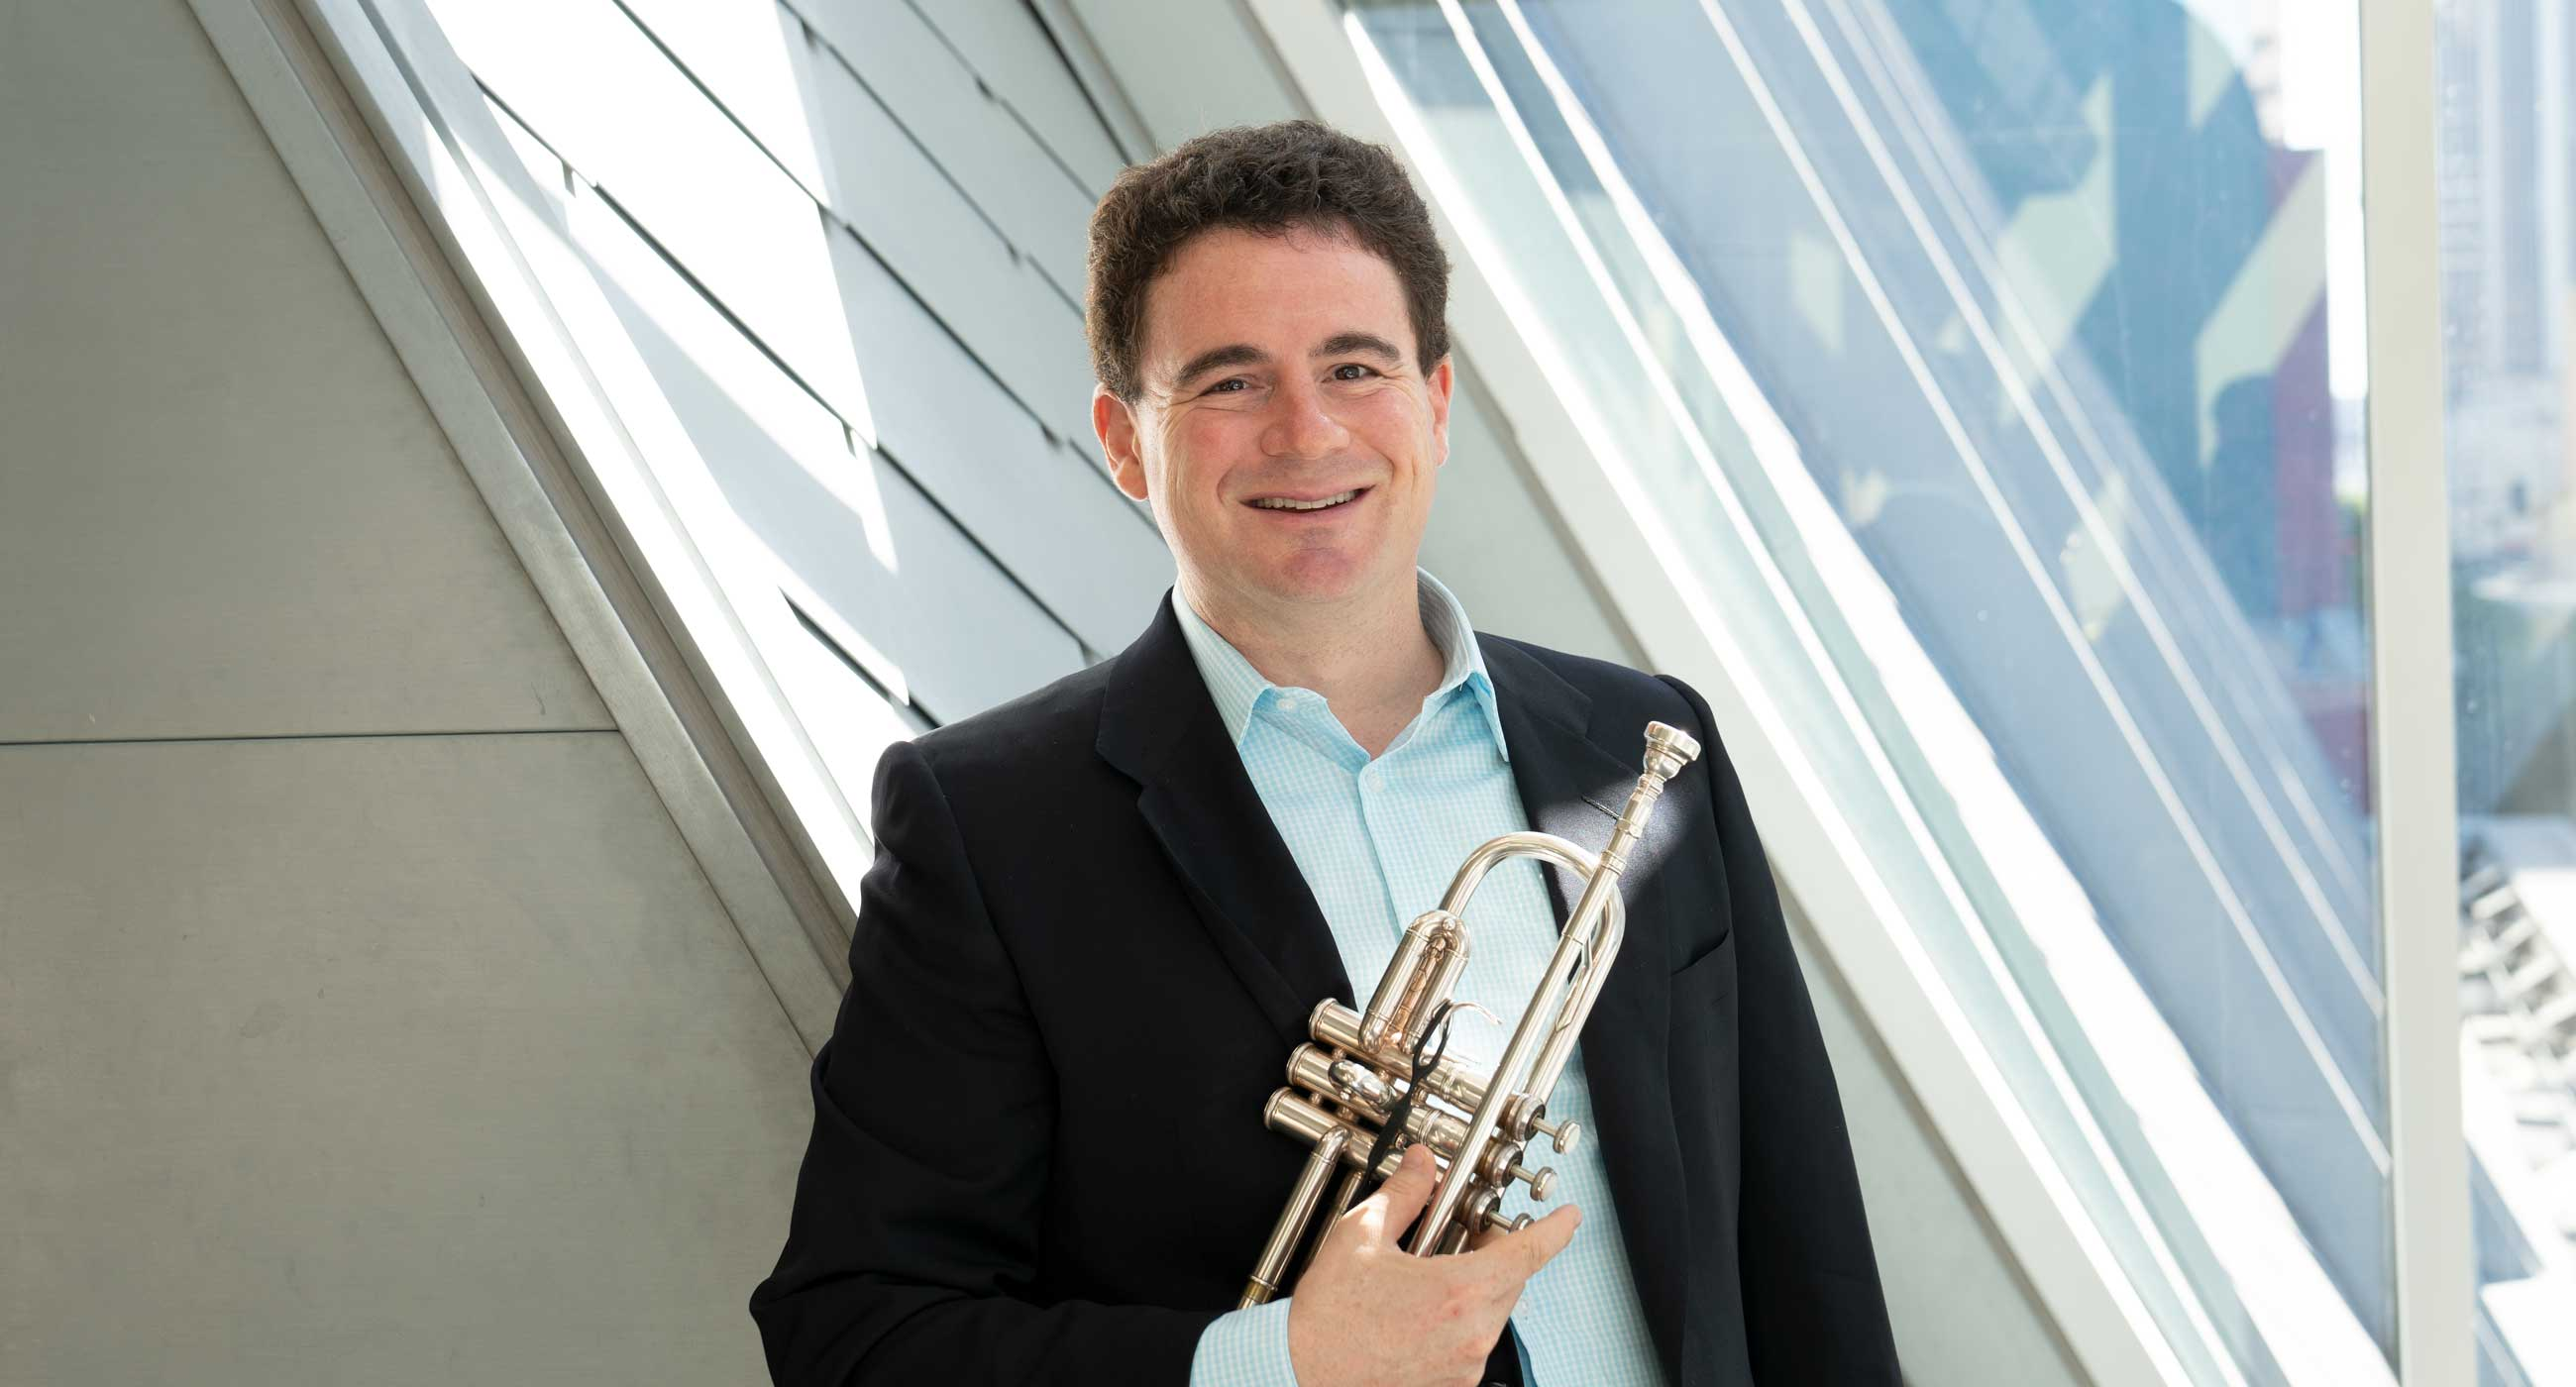 Mike Zonshine wearing a collared shirt and a suit jacket holding a trumpet in front of a window.